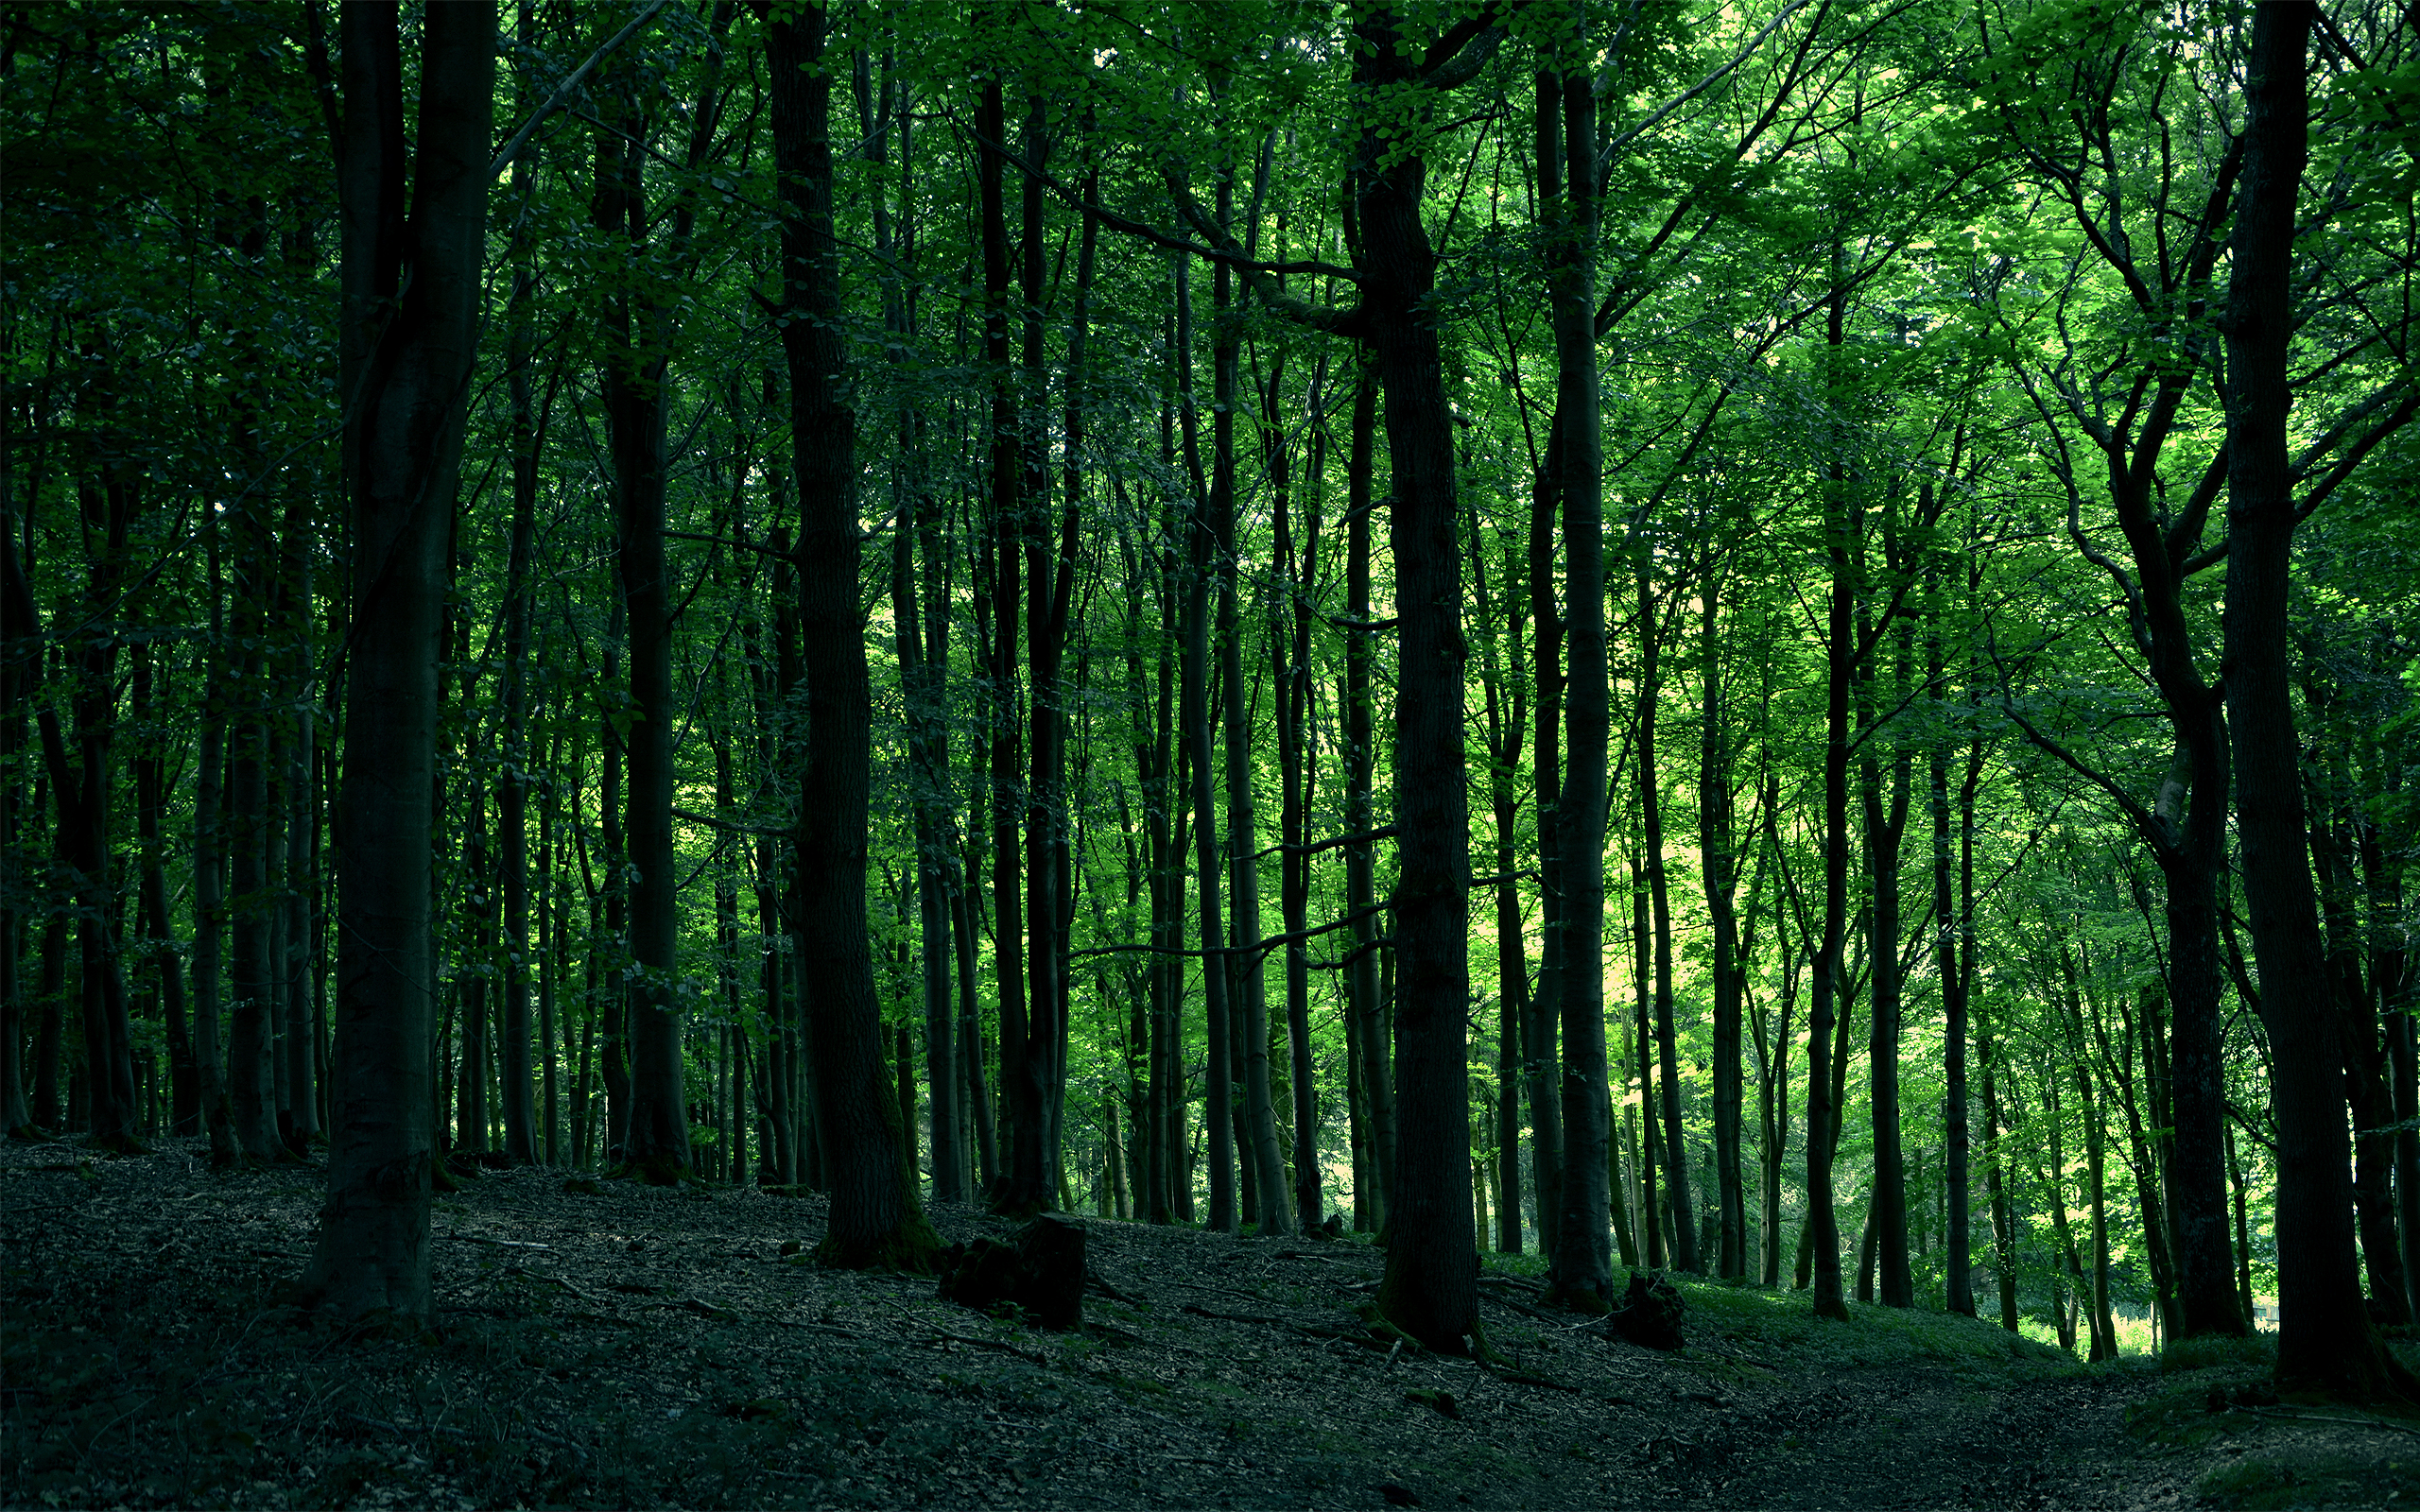 Hide, organic, nature, trees, forest, green, living, outside, life